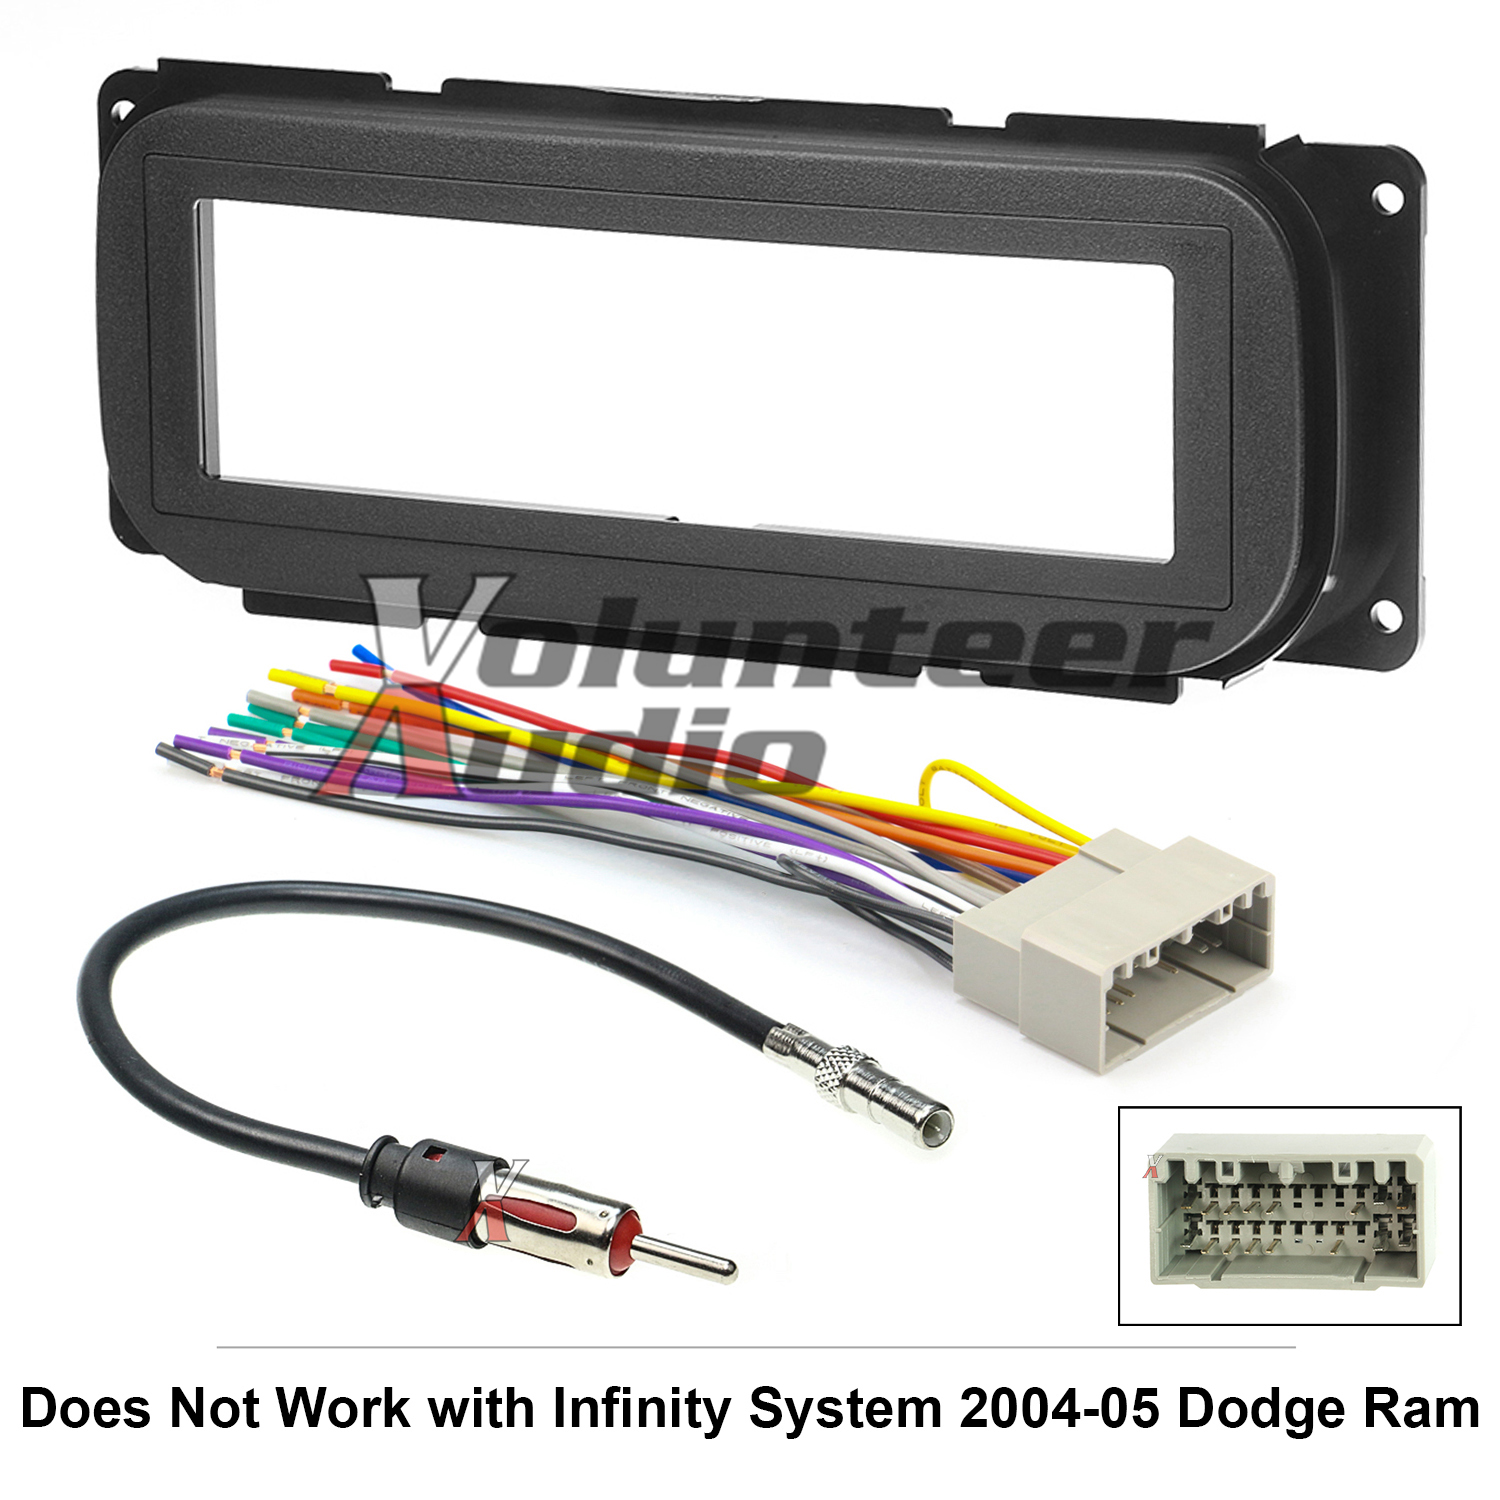 Cdk Cwh Cr on Scosche Stereo Wiring Harness Dodge